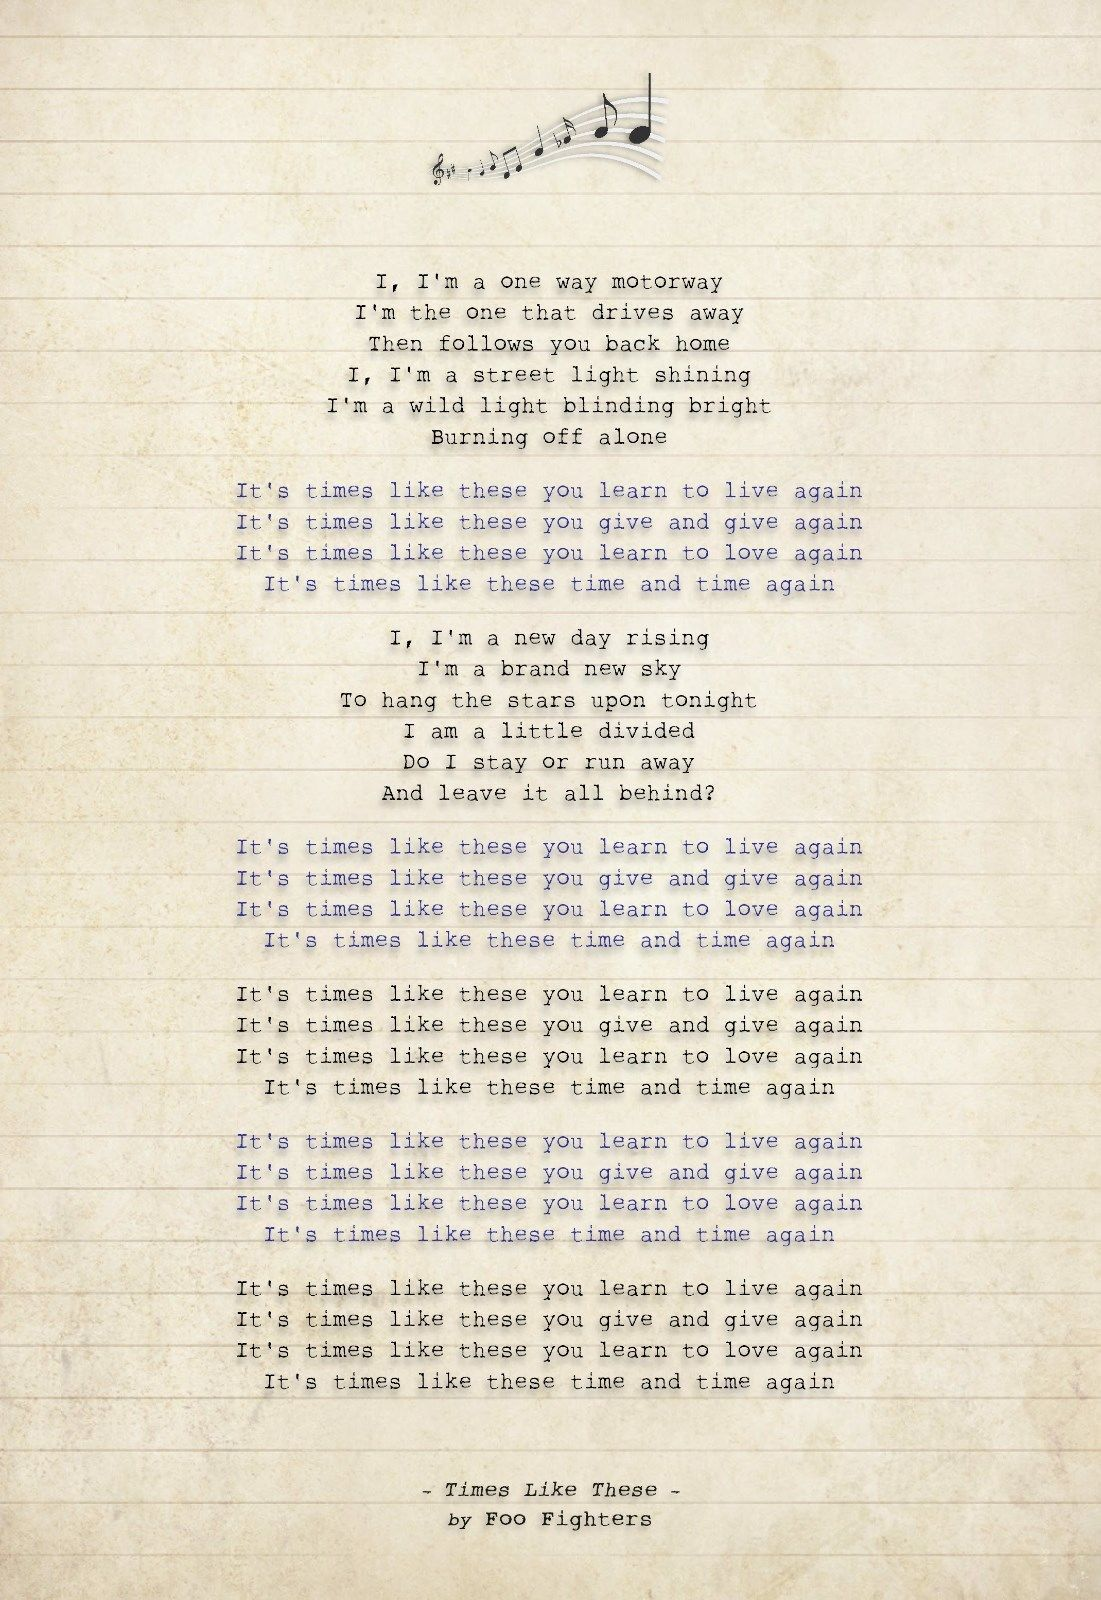 476 FOO FIGHTERS - Times Like These - Song Lyric Art Poster Print - Sizes A4 A3 - £6.95 | PicClick UK